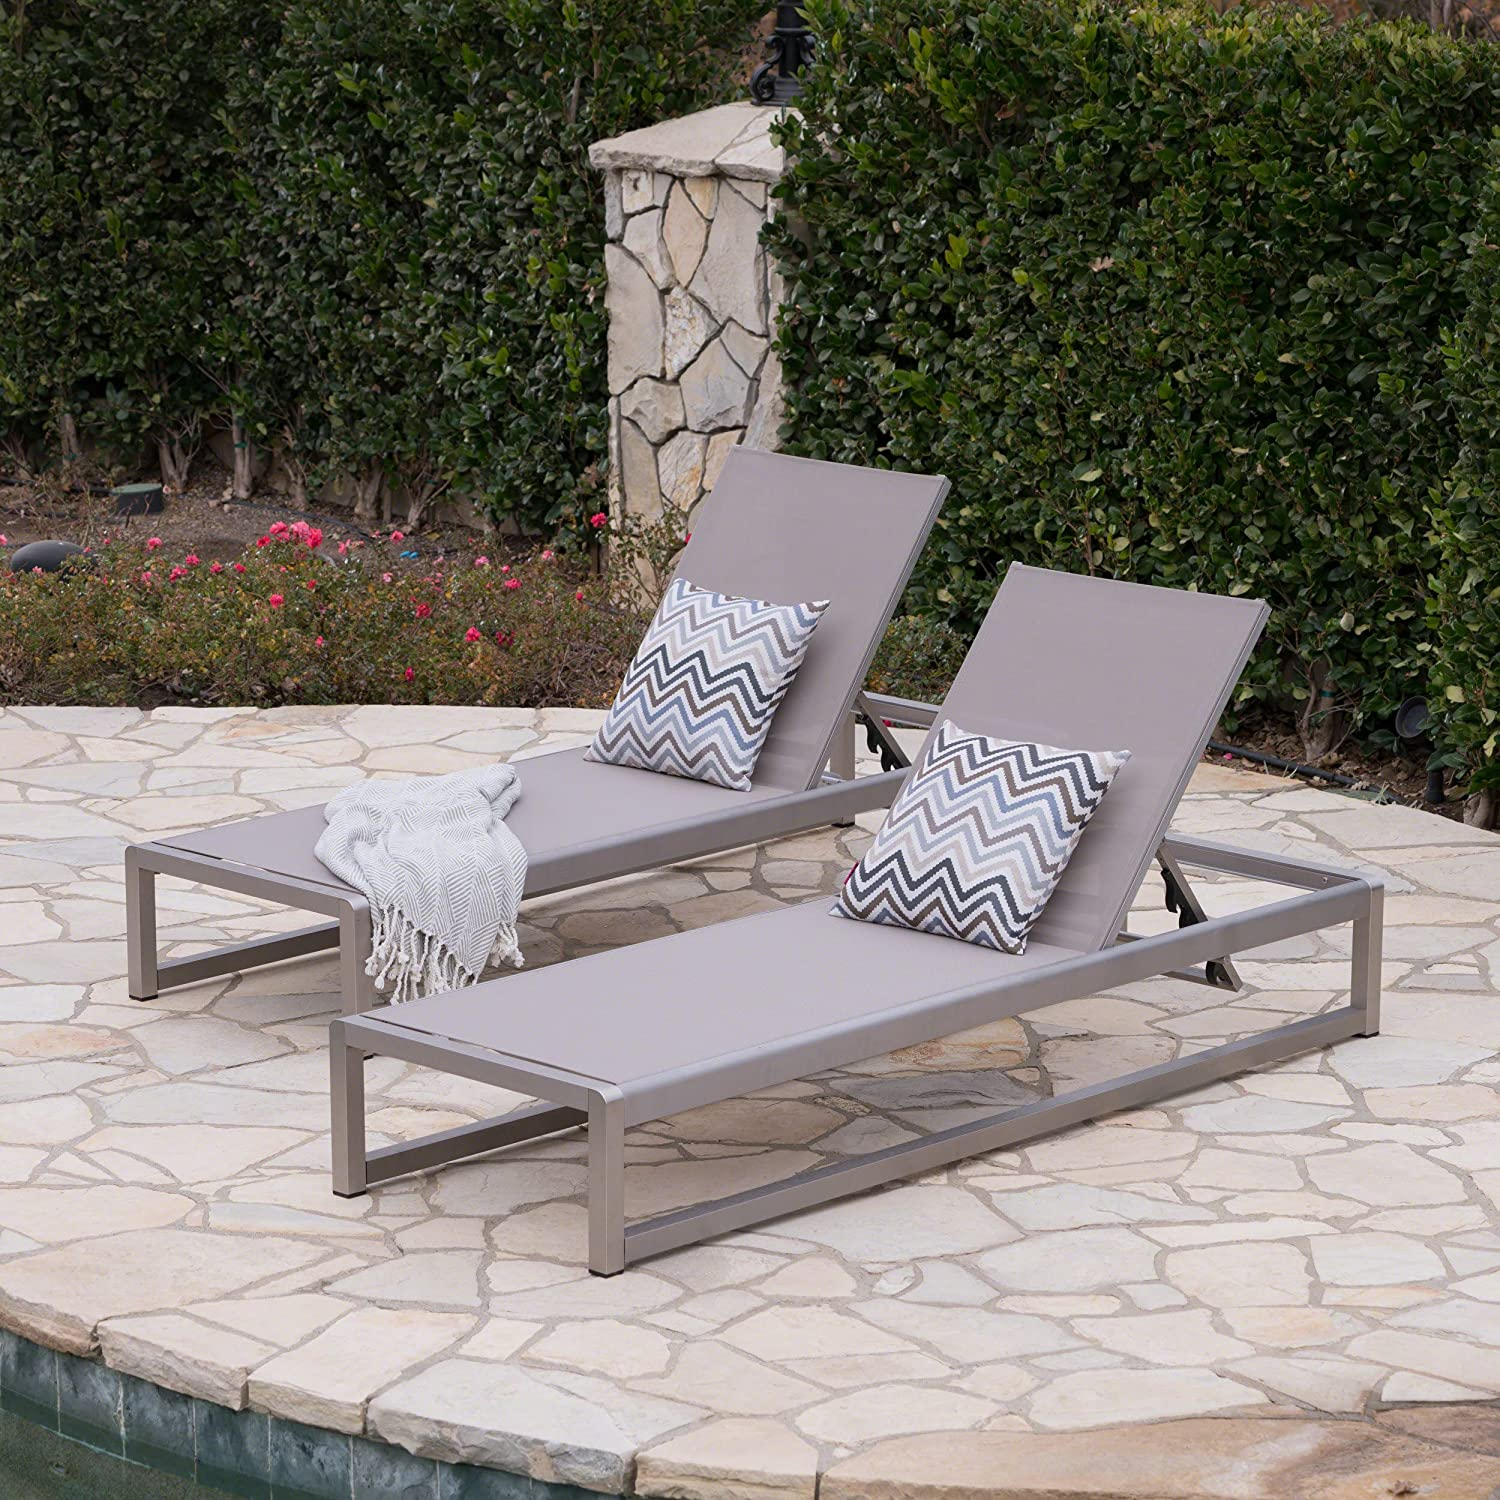 Christopher Knight Home California Outdoor Mesh Chaise Lounge with Aluminum Frame, 2-Pcs Set, Grey / Silver